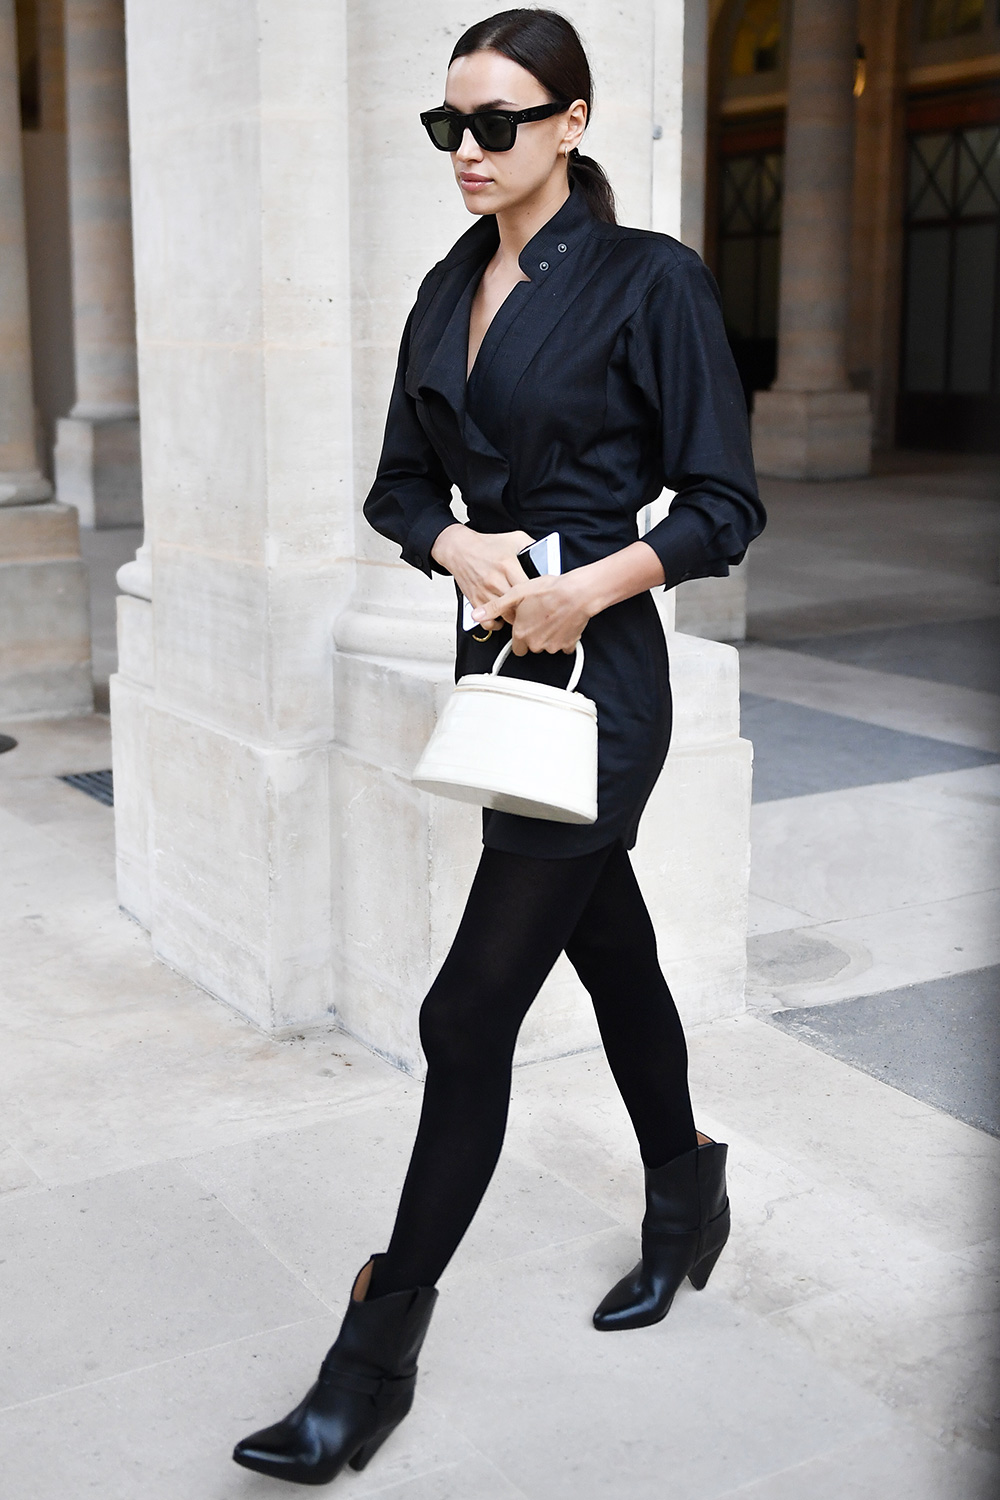 Irina Shayk attends the Isabel Marant show as part of the Paris Fashion Week Womenswear Fall/Winter 2020/2021 on February 27, 2020 in Paris, France